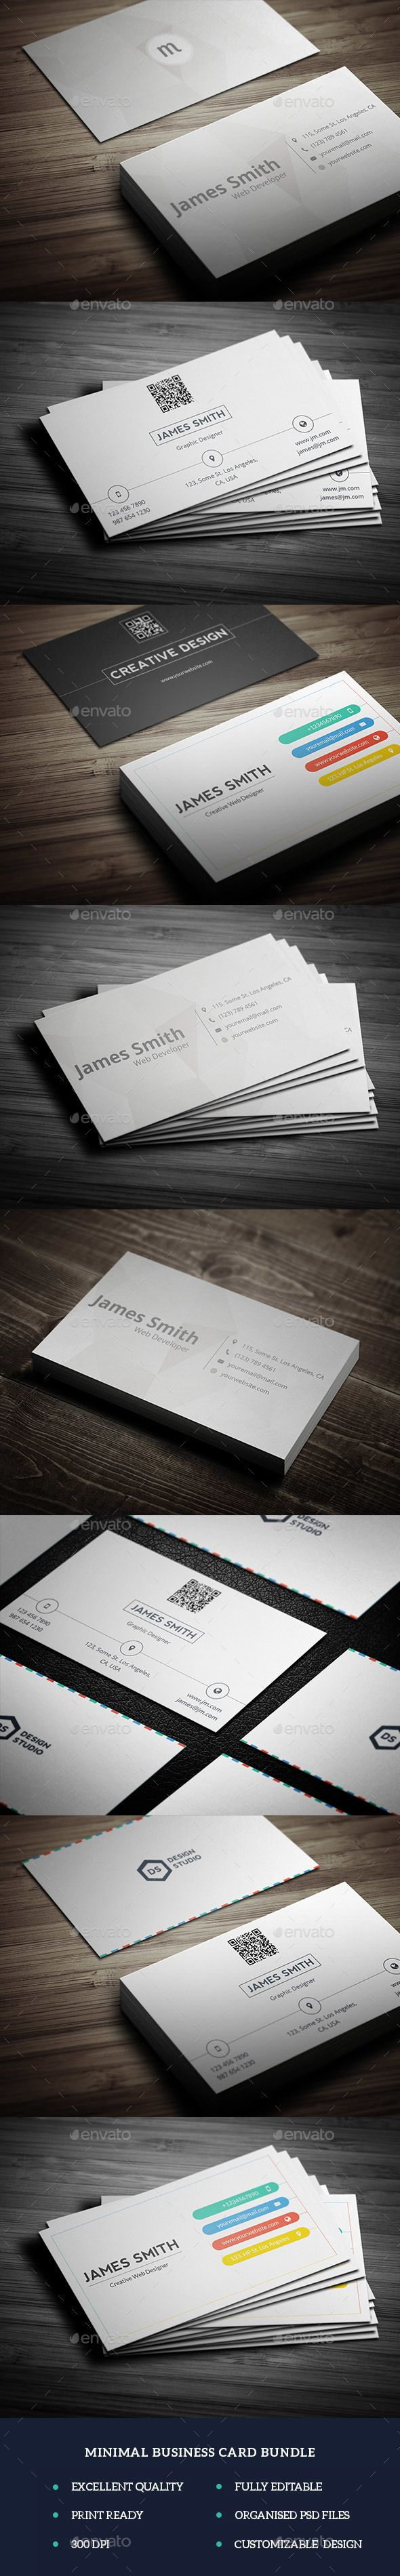 12 best name card design images on pinterest